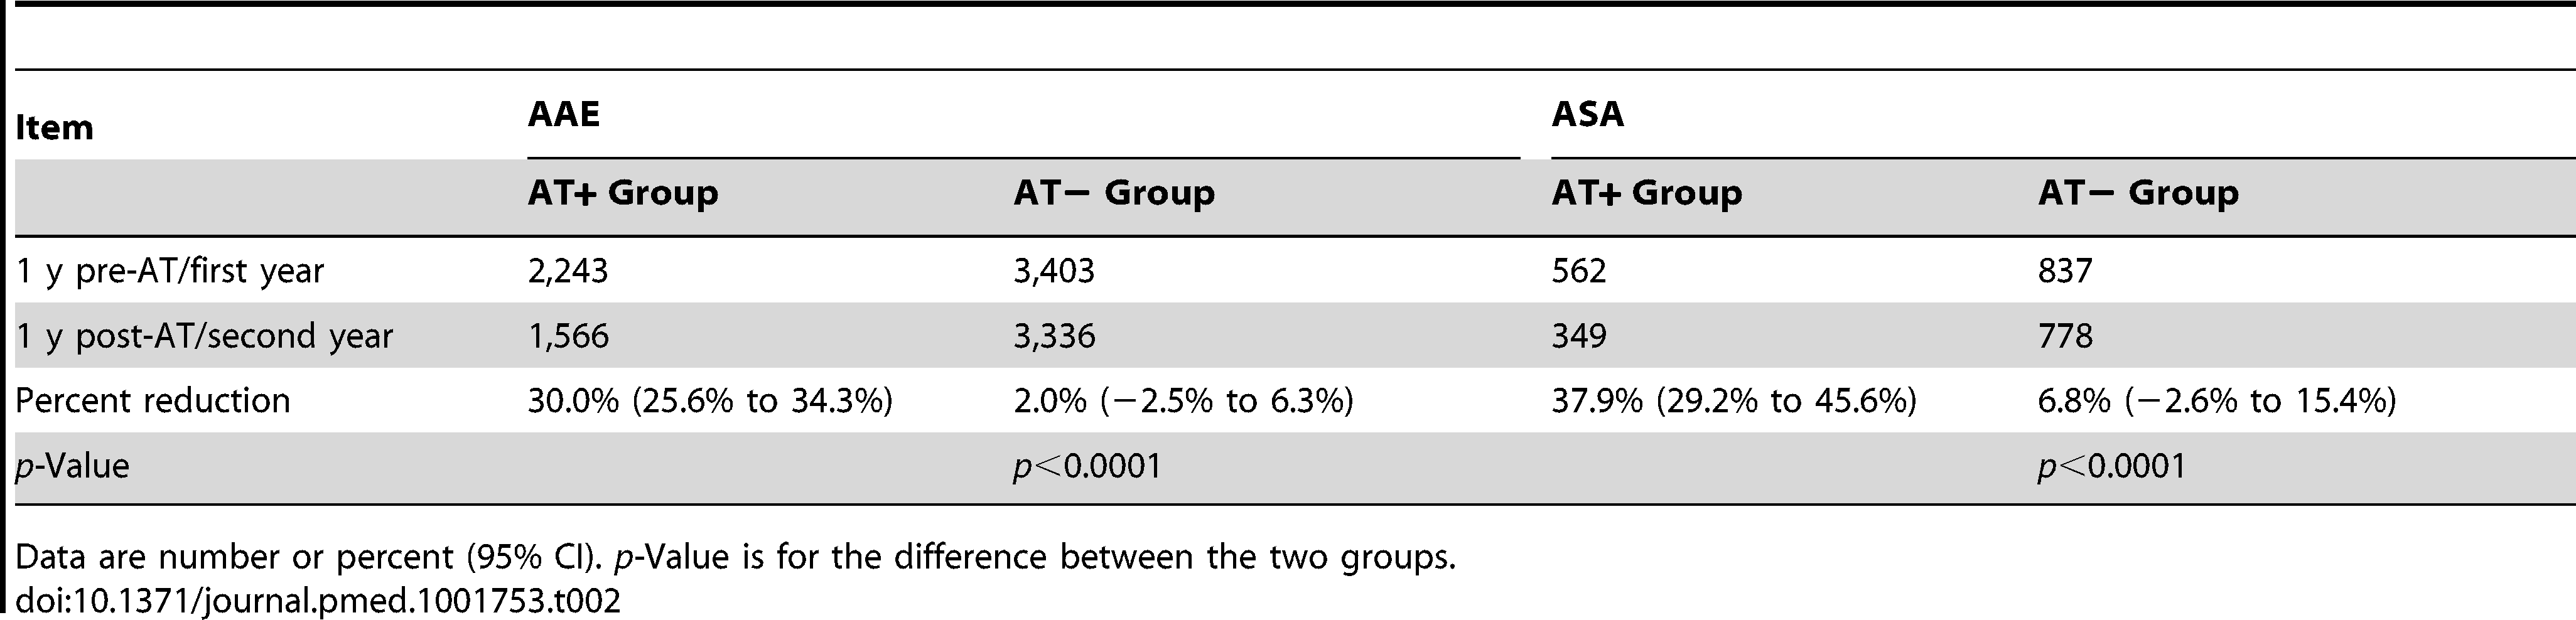 Annual incidence of acute asthma exacerbation and acute status asthmaticus: comparing adenotonsillectomy to no adenotonsillectomy.